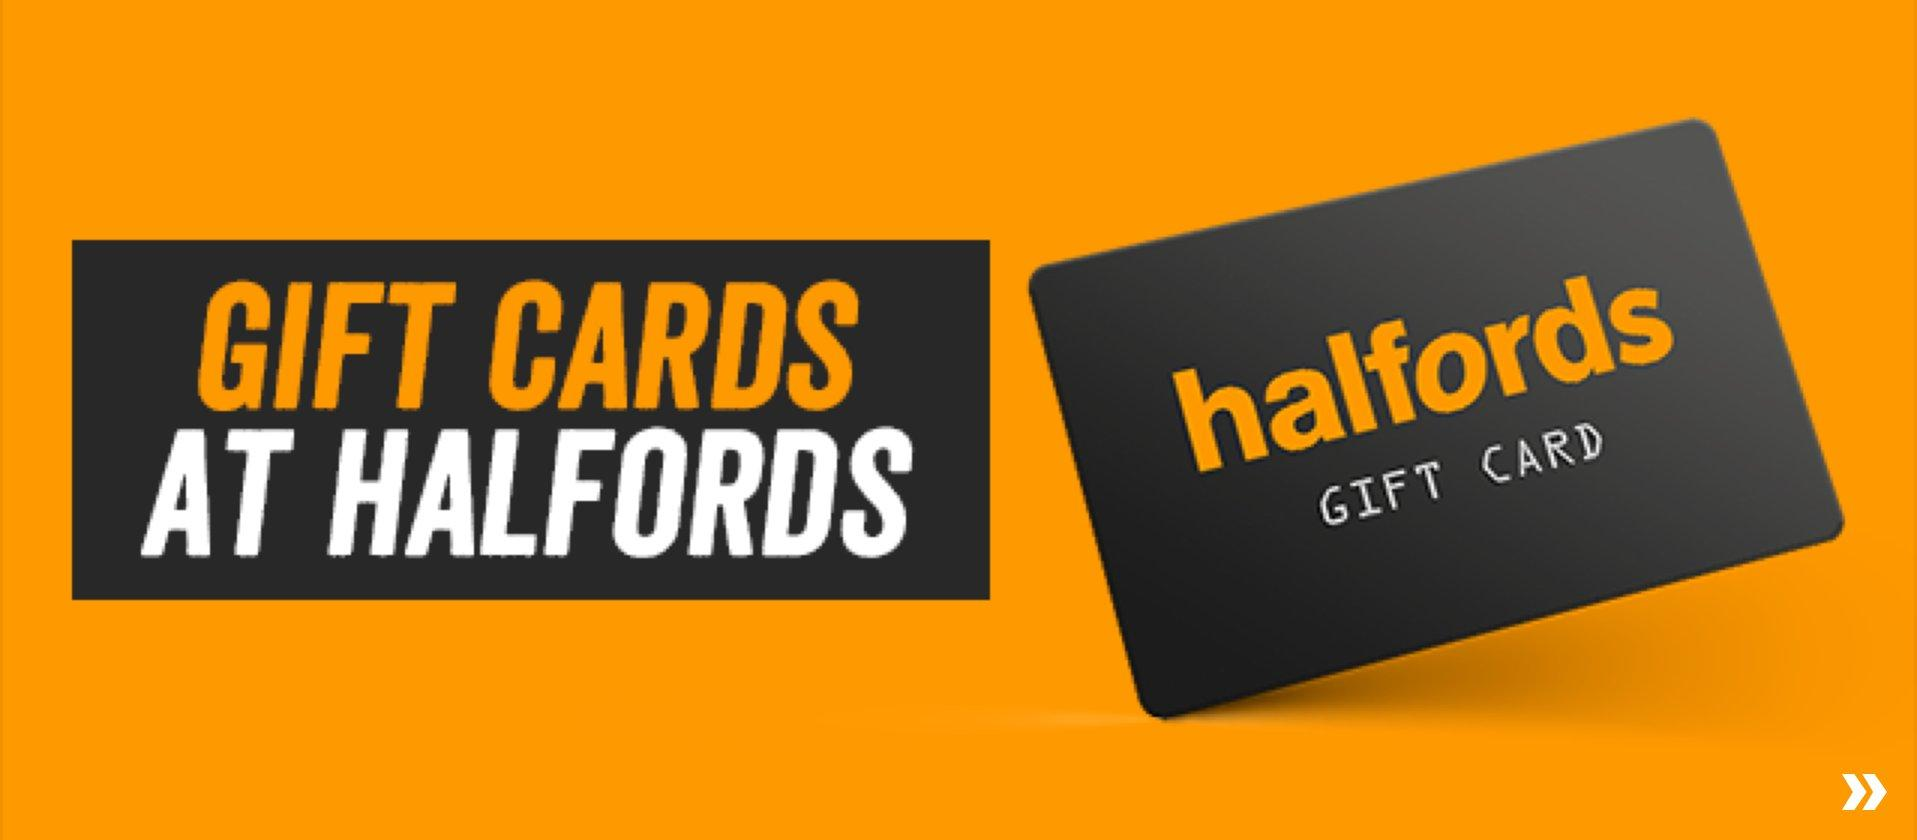 Gifts Shop The Latest Gifts For Him And Her At Halfords